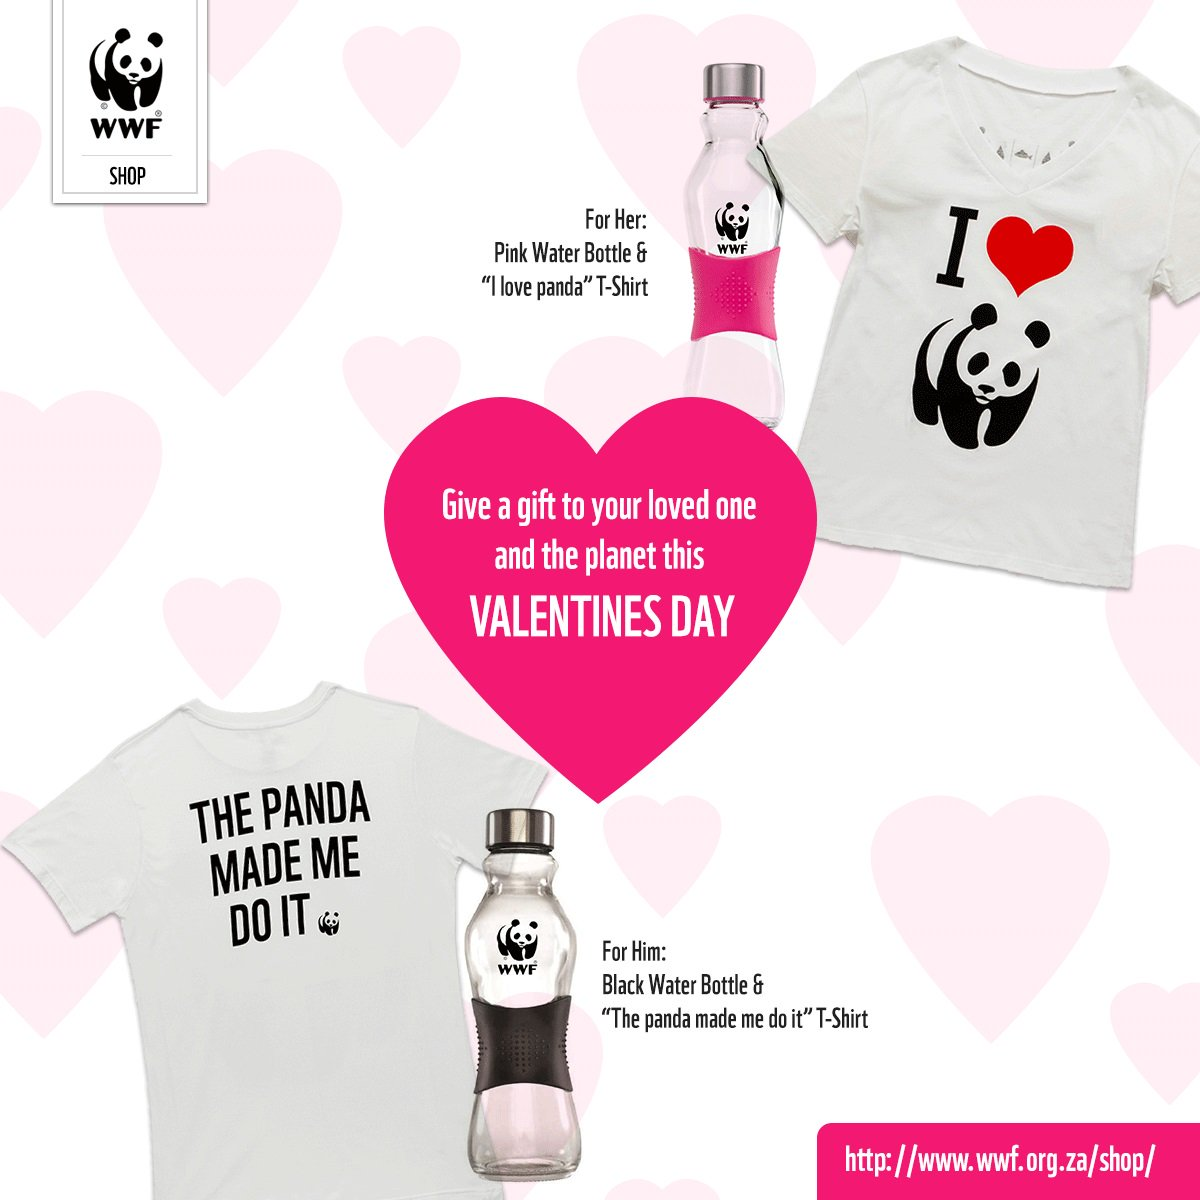 Wwf South Africa On Twitter Want To Make An Impression This Valentine S Day Give Gifts That Give To Nature Lovenature Https T Co Kfjueydqwp Https T Co 2ivvzhl3mu